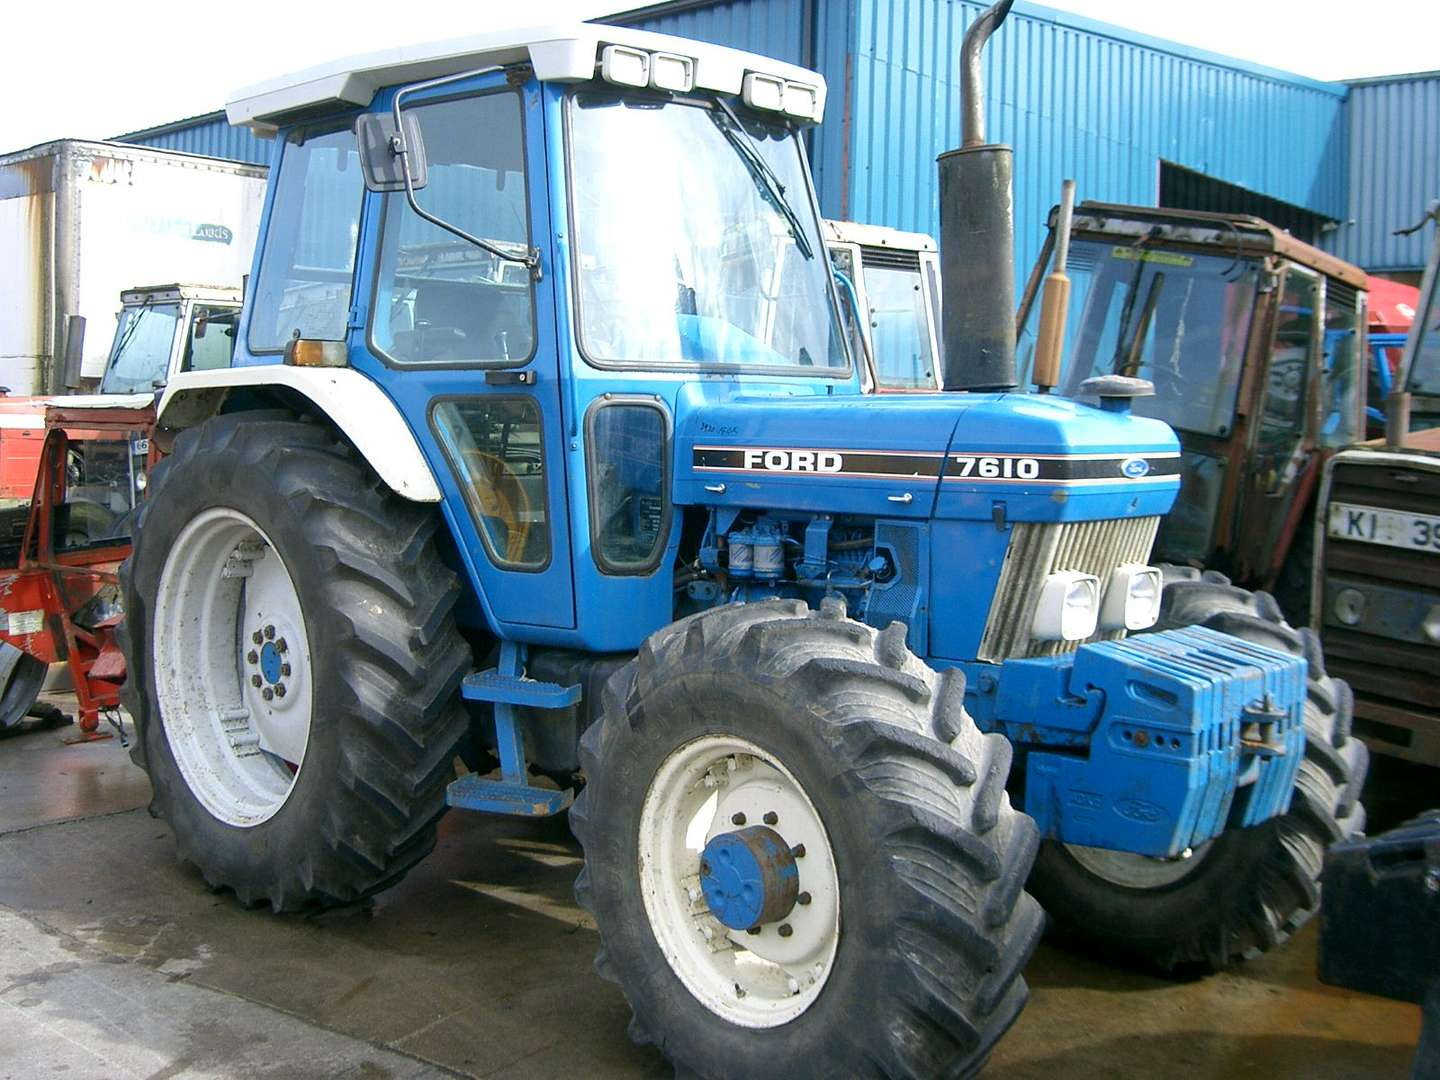 Ford 7610 #9677488